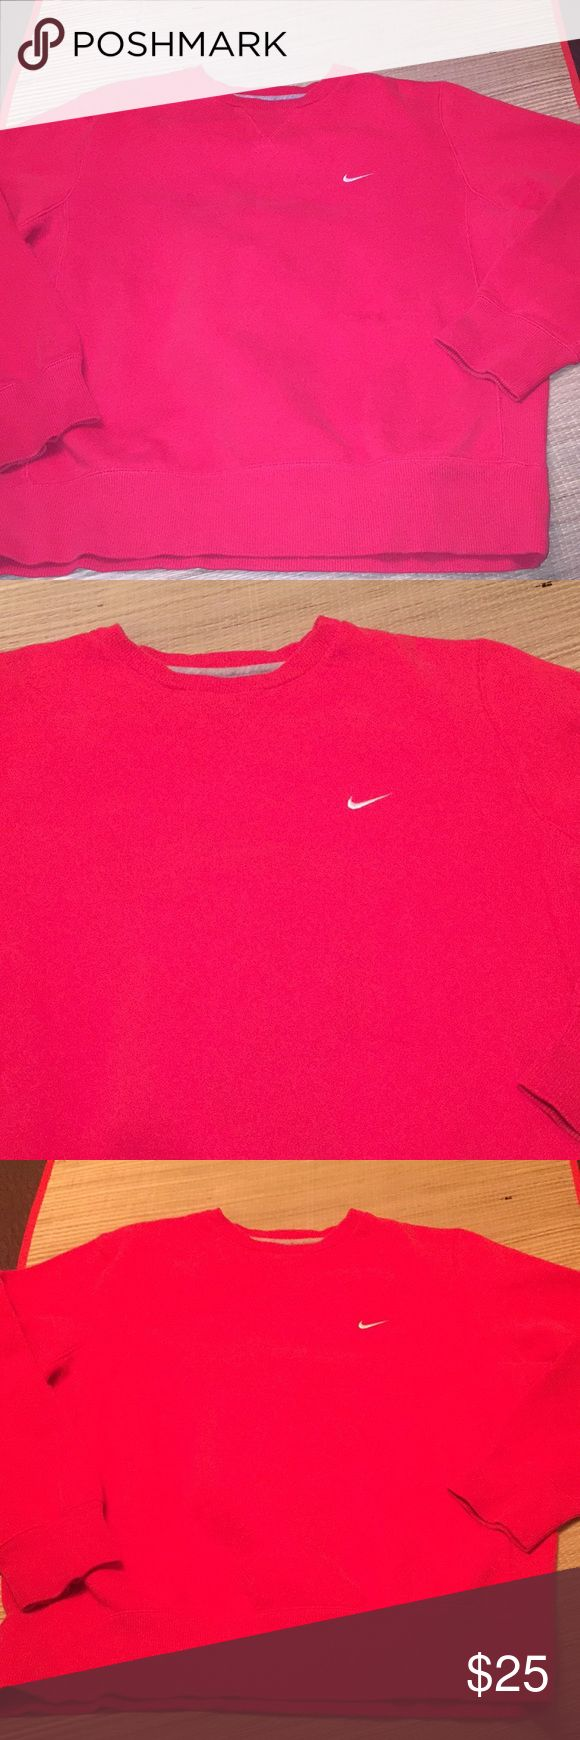 Nike Sweatshirt red white nike check retro Vintage Men's large (looser fit)  🔥price firm 🔥retro Nike Sweatshirt. Excellent condition normal light fading not bad. Bright red with White Nike check on chest. Warm long sleeve Nike hoodie sweatshirt for men. Vintage gym style but not sure how old it is since it has Nike athletic dept tag. Similar to 90s style Nike sweats🔥classic Nike Jordan colors 🔥 🔥 price firm ships next day 🔥tags: vintage Nike windbreaker retro Champion hoodie Vtg polo…